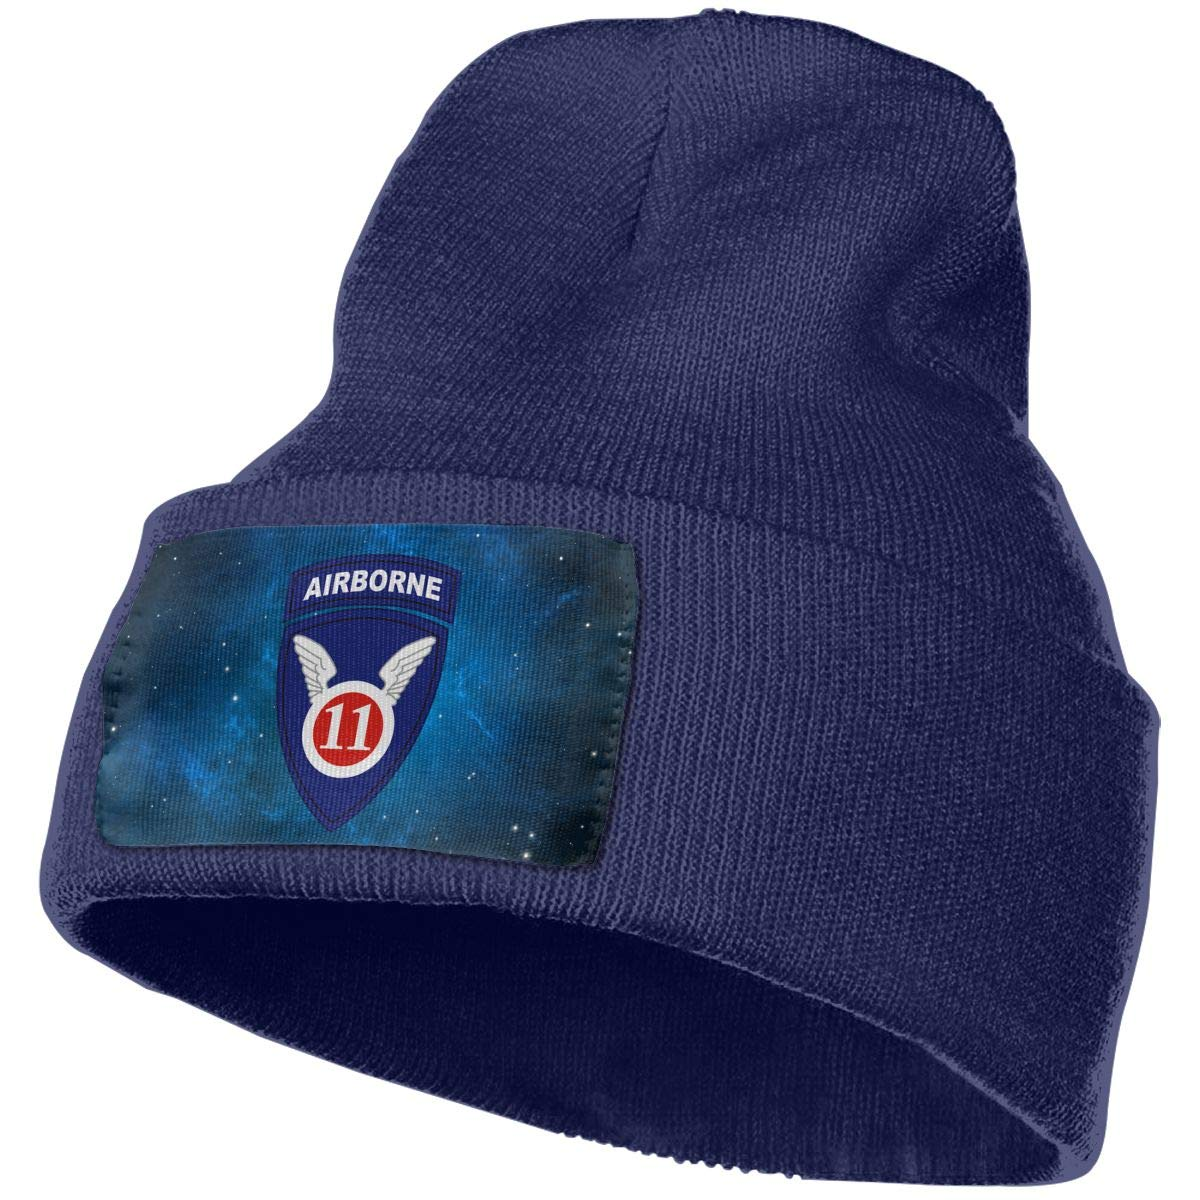 Helidoud Army 11th Airborne Division Winter Beanie Hat Knit Skull Cap for for Men /& Women